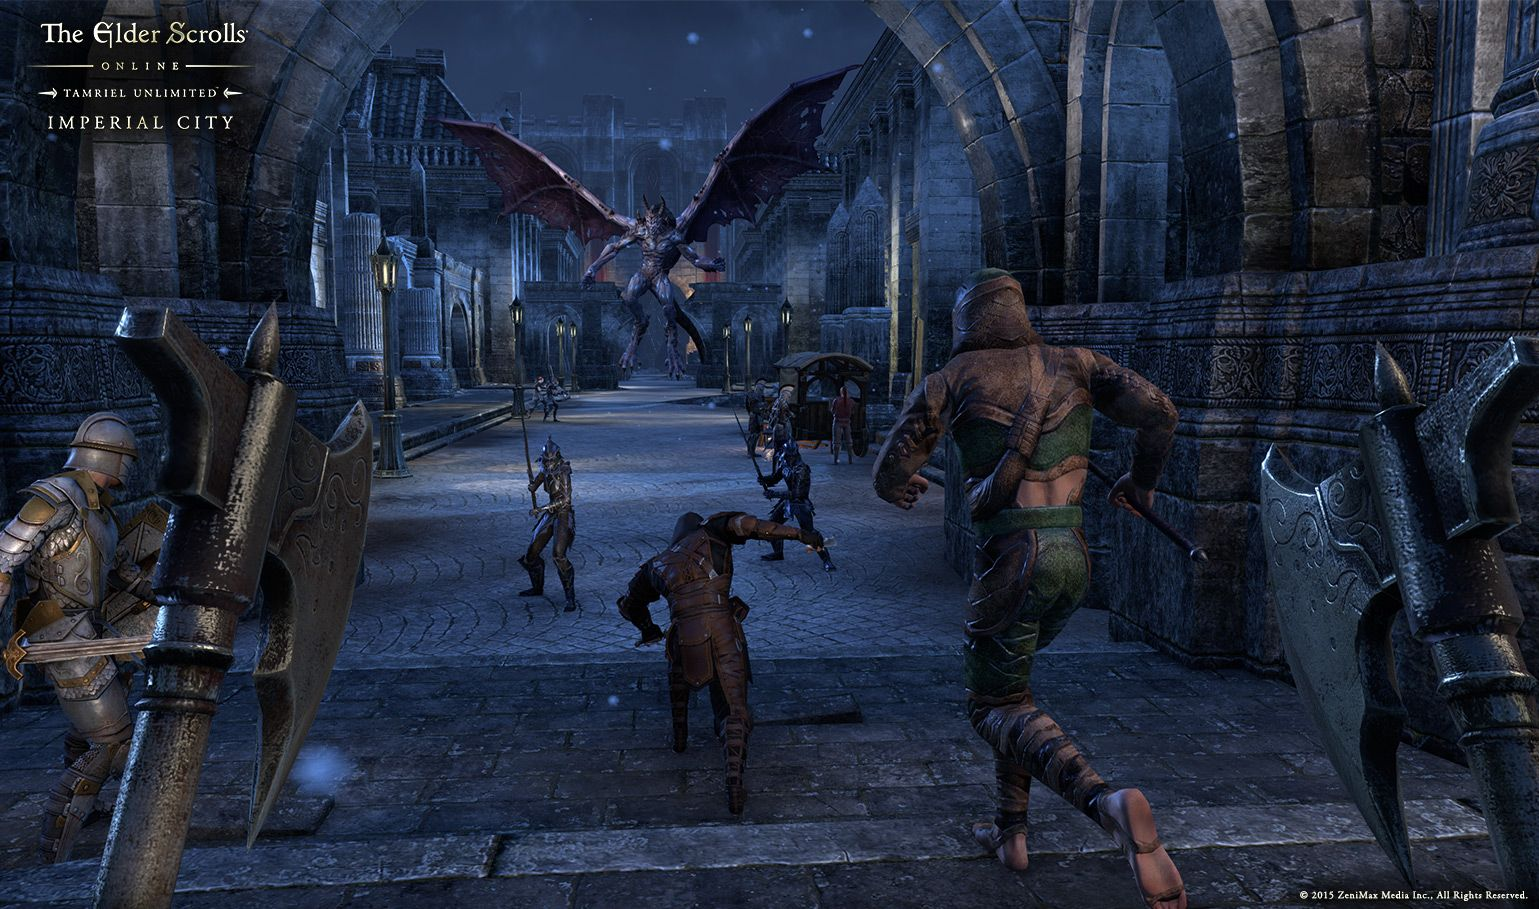 Watch Here S The Trailer For The Elder Scrolls Online S Newest